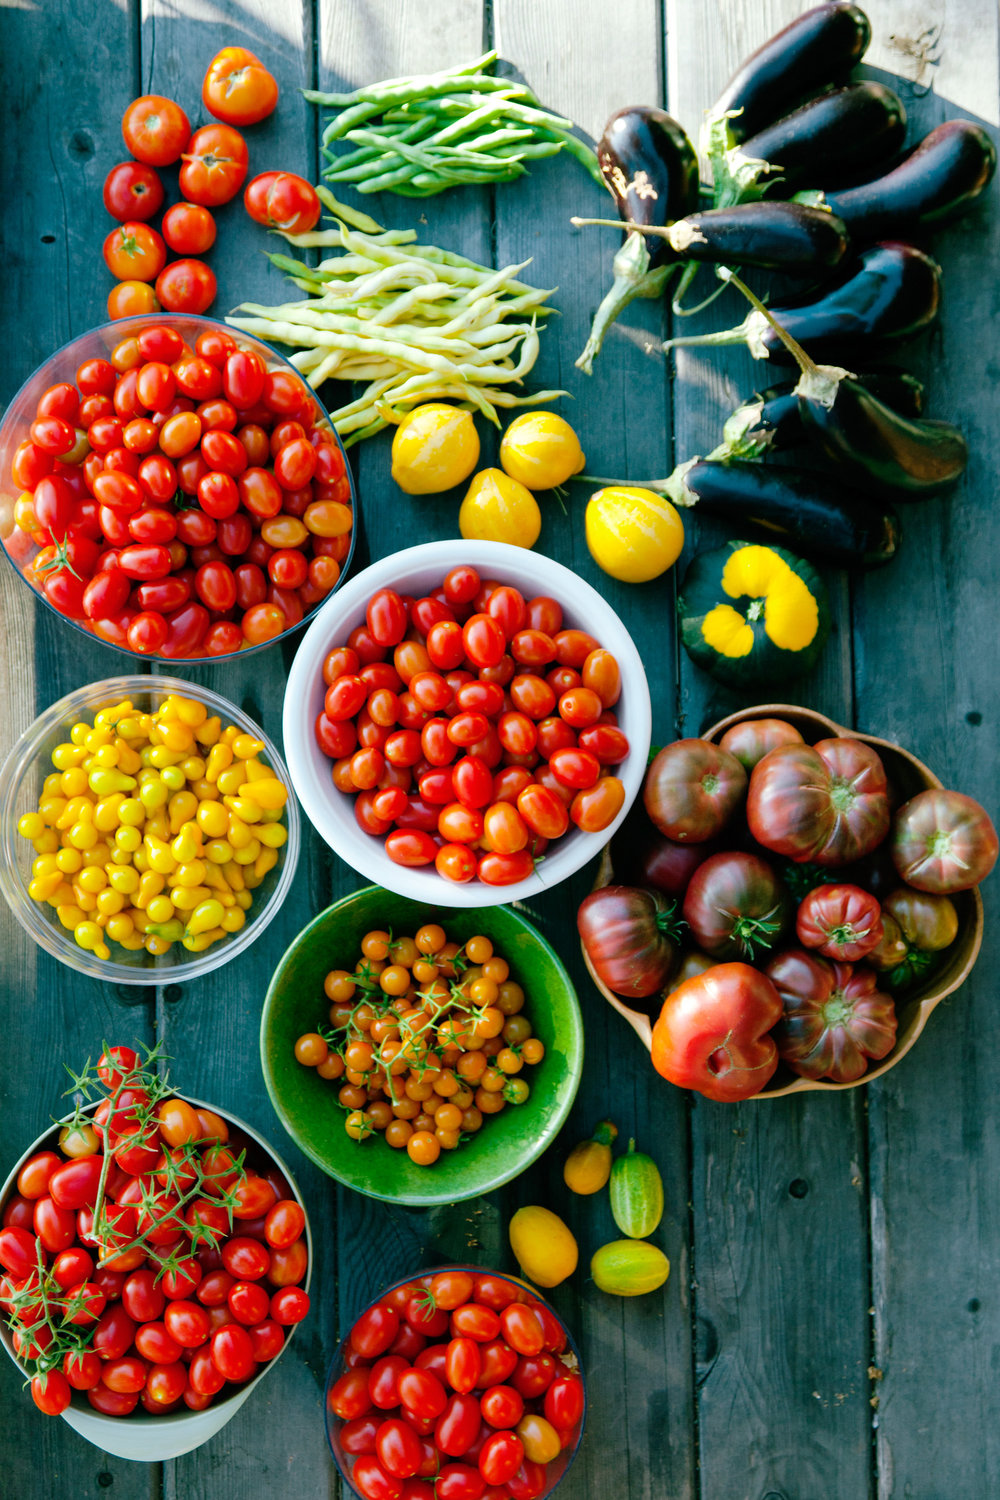 choosing your tomatoes